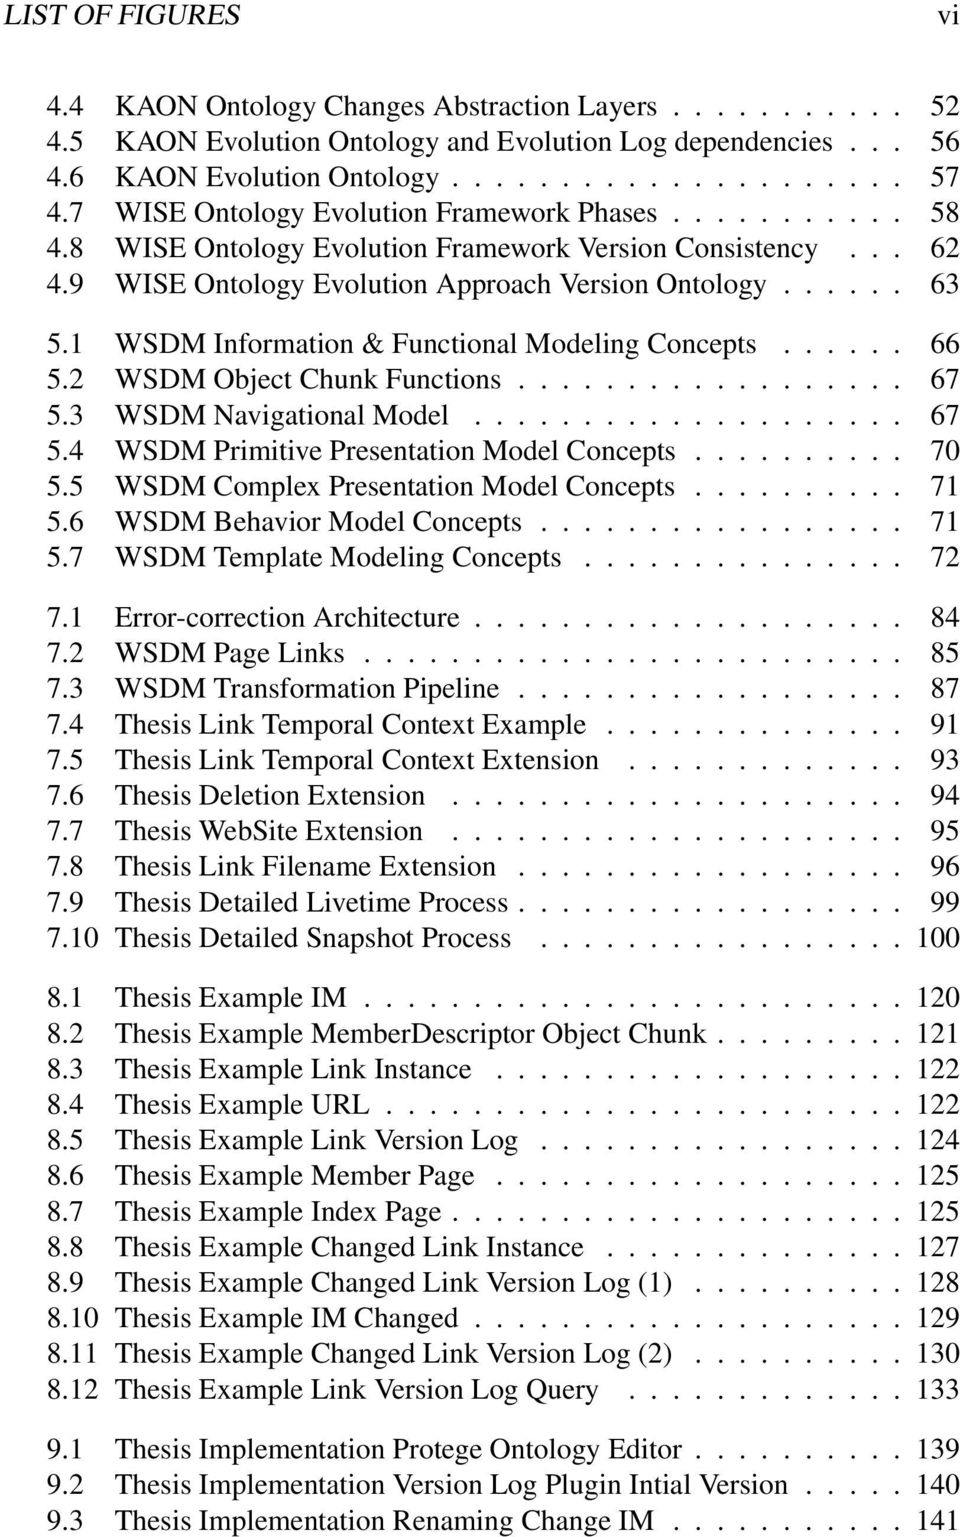 1 WSDM Information & Functional Modeling Concepts...... 66 5.2 WSDM Object Chunk Functions.................. 67 5.3 WSDM Navigational Model.................... 67 5.4 WSDM Primitive Presentation Model Concepts.